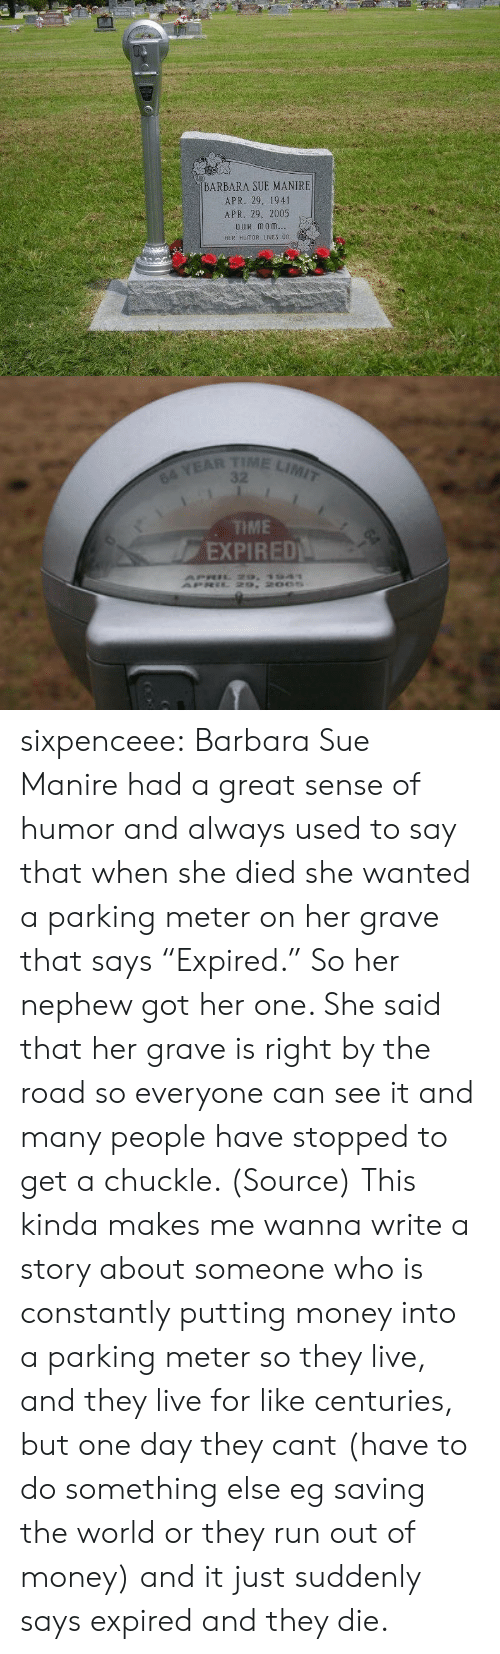 "Money, Run, and Target: BARBARA SUE MANIRE  APR. 29. 1941  APR. 29, 2005  OuR monm  HER HUMOR IES 0n   TIME LIMIT  64 YEAR  TME  EXPIRED sixpenceee: Barbara Sue Manire had a great sense of humor and always used to say that when she died she wanted a parking meter on her grave that says ""Expired."" So her nephew got her one. She said that her grave is right by the road so everyone can see it and many people have stopped to get a chuckle. (Source)   This kinda makes me wanna write a story about someone who is constantly putting money into a parking meter so they live, and they live for like centuries, but one day they cant (have to do something else eg saving the world or they run out of money) and it just suddenly says expired and they die."